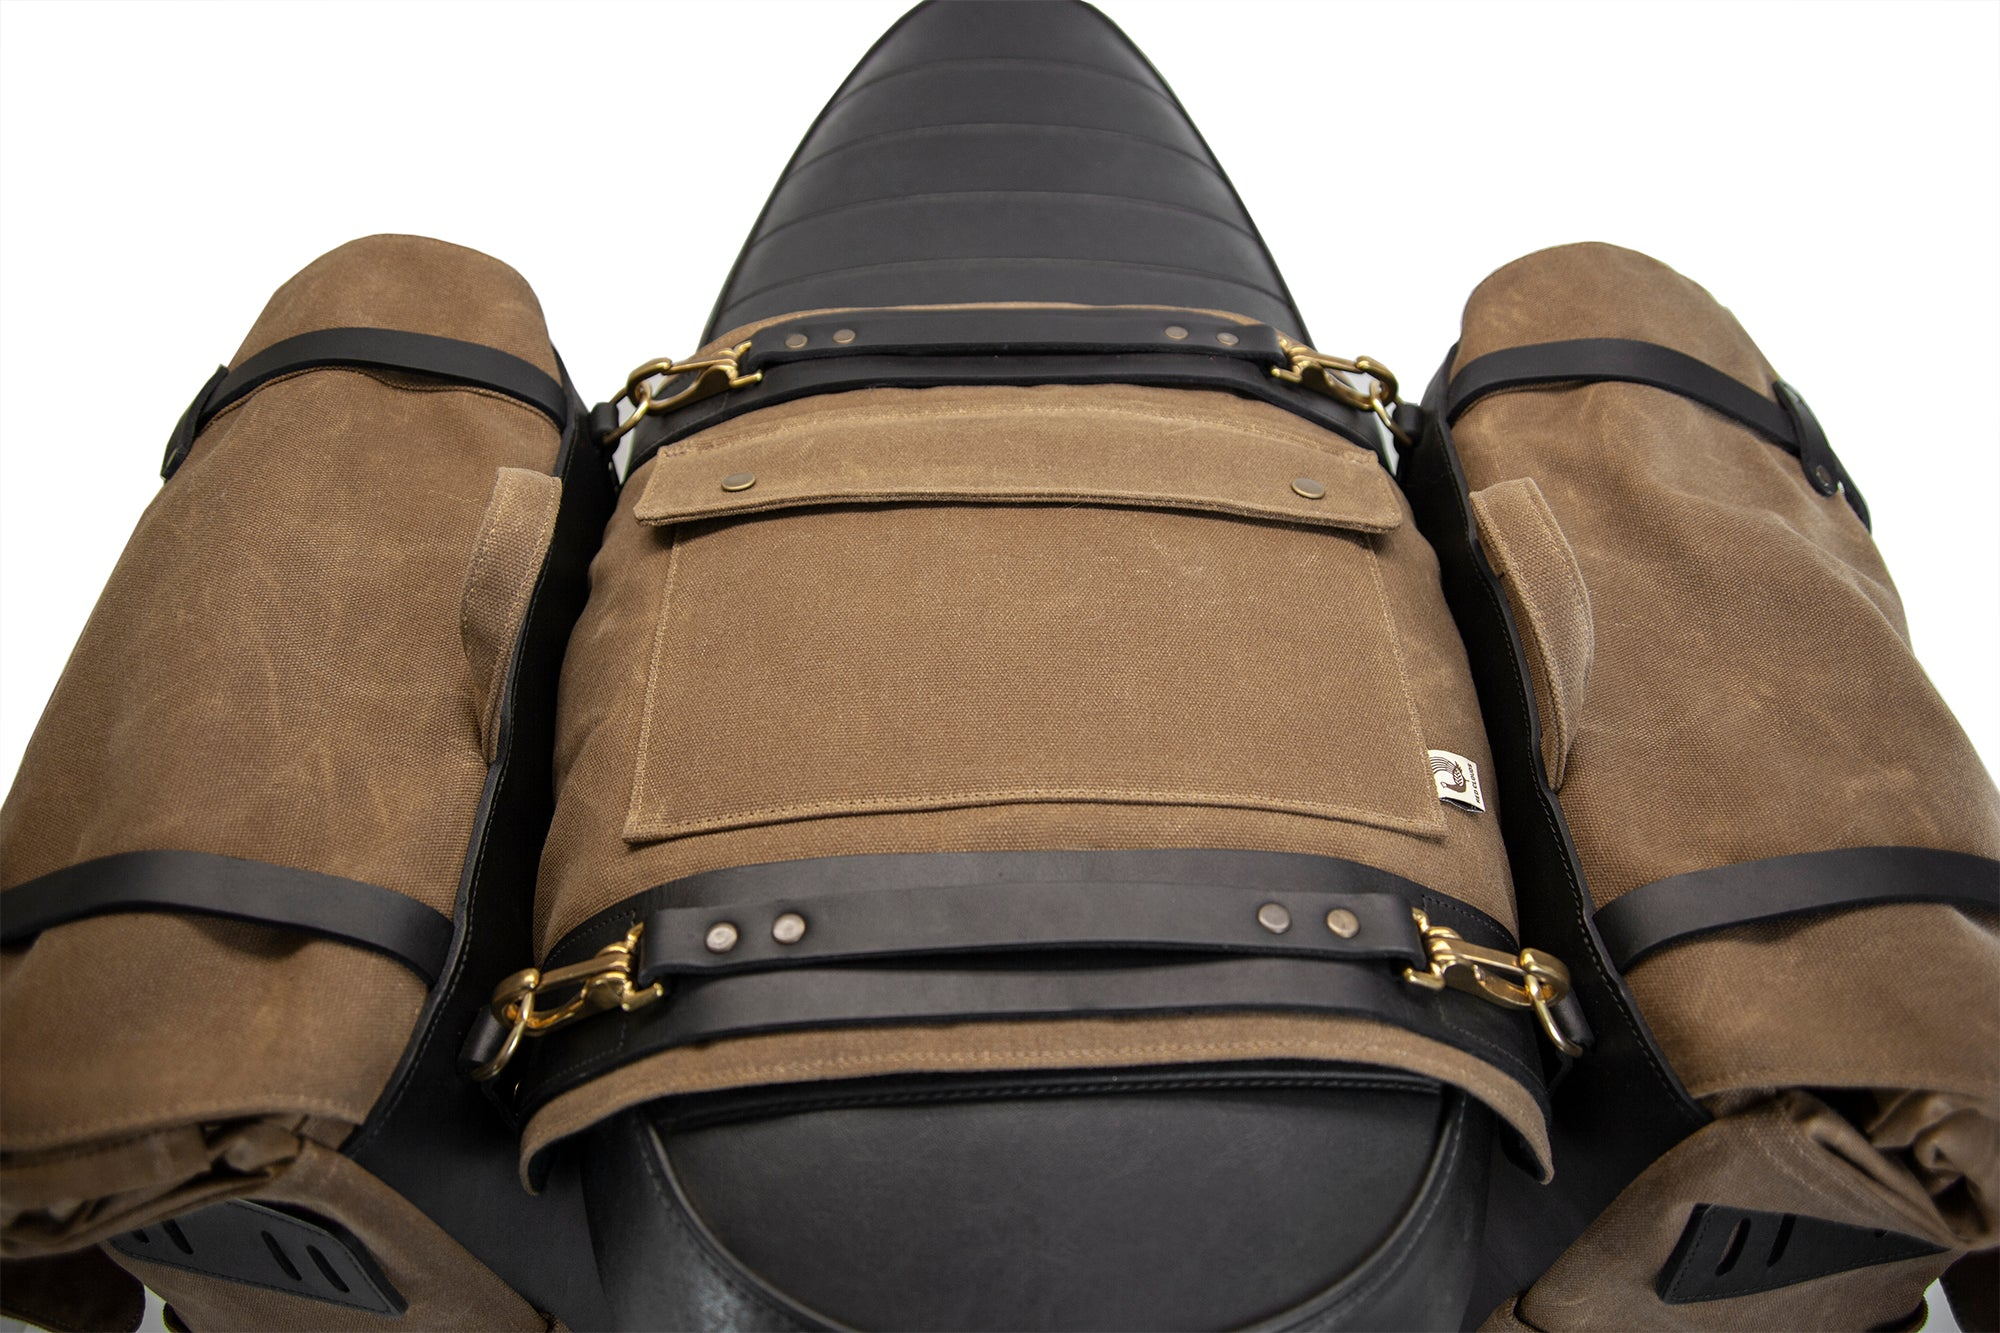 Long Hauler Saddle Bags - Black / Brown (Set of 2)